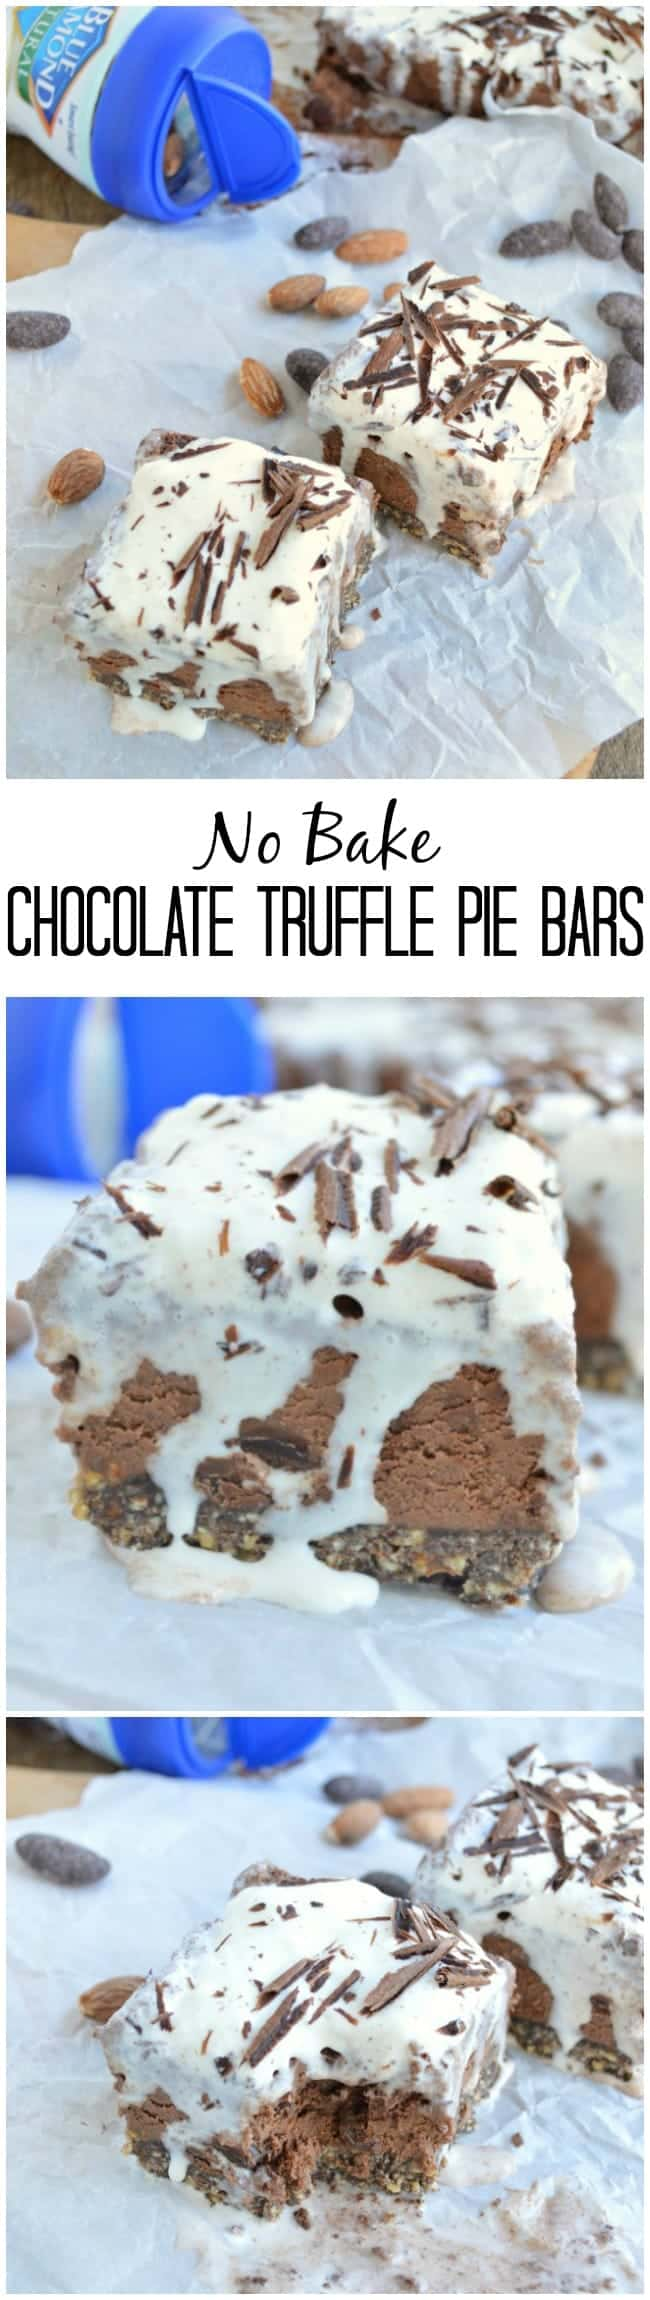 These No Bake Chocolate Truffle Pie Bars are cool and creamy and have a delicious chocolate almond crust!!